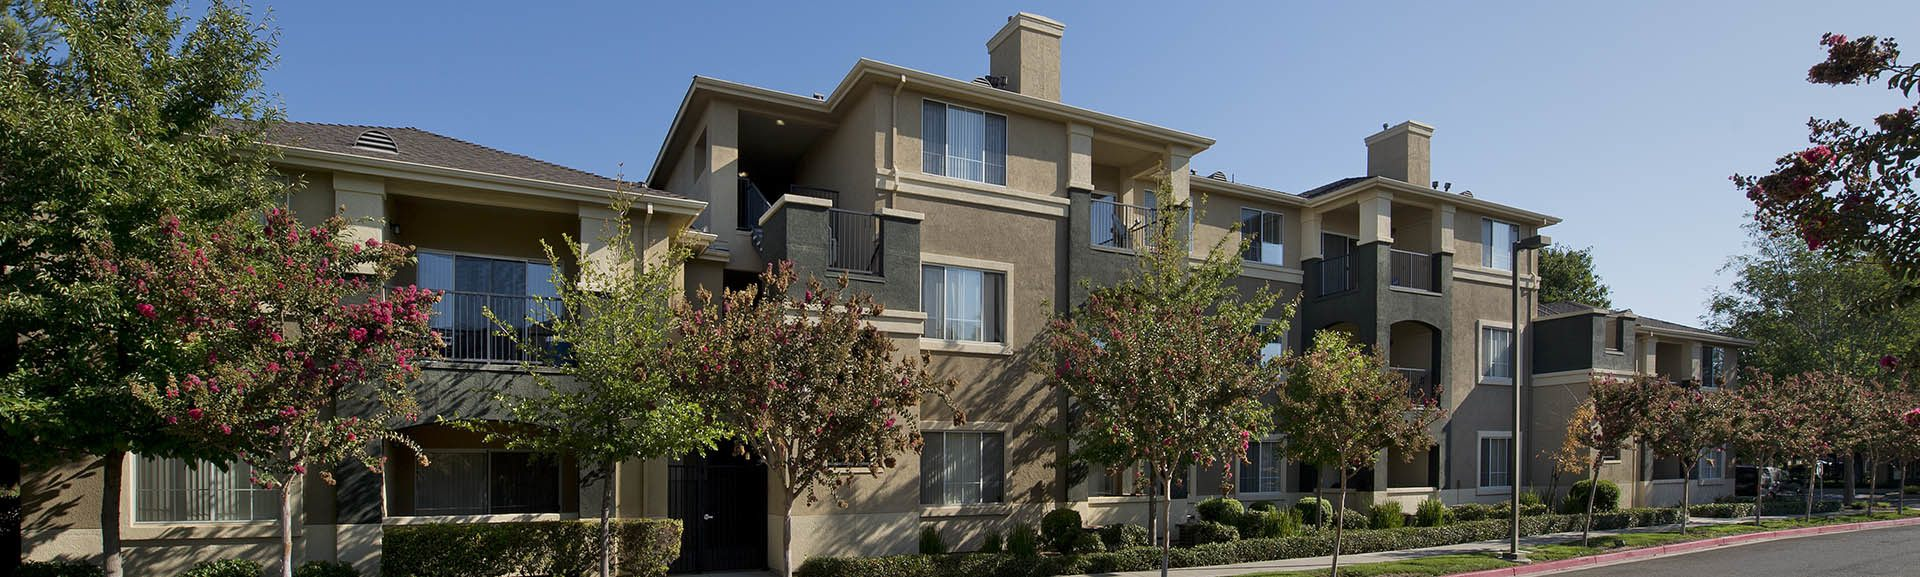 Learn about our neighborhood at Cross Pointe Apartment Homes in Antioch, CA on our website